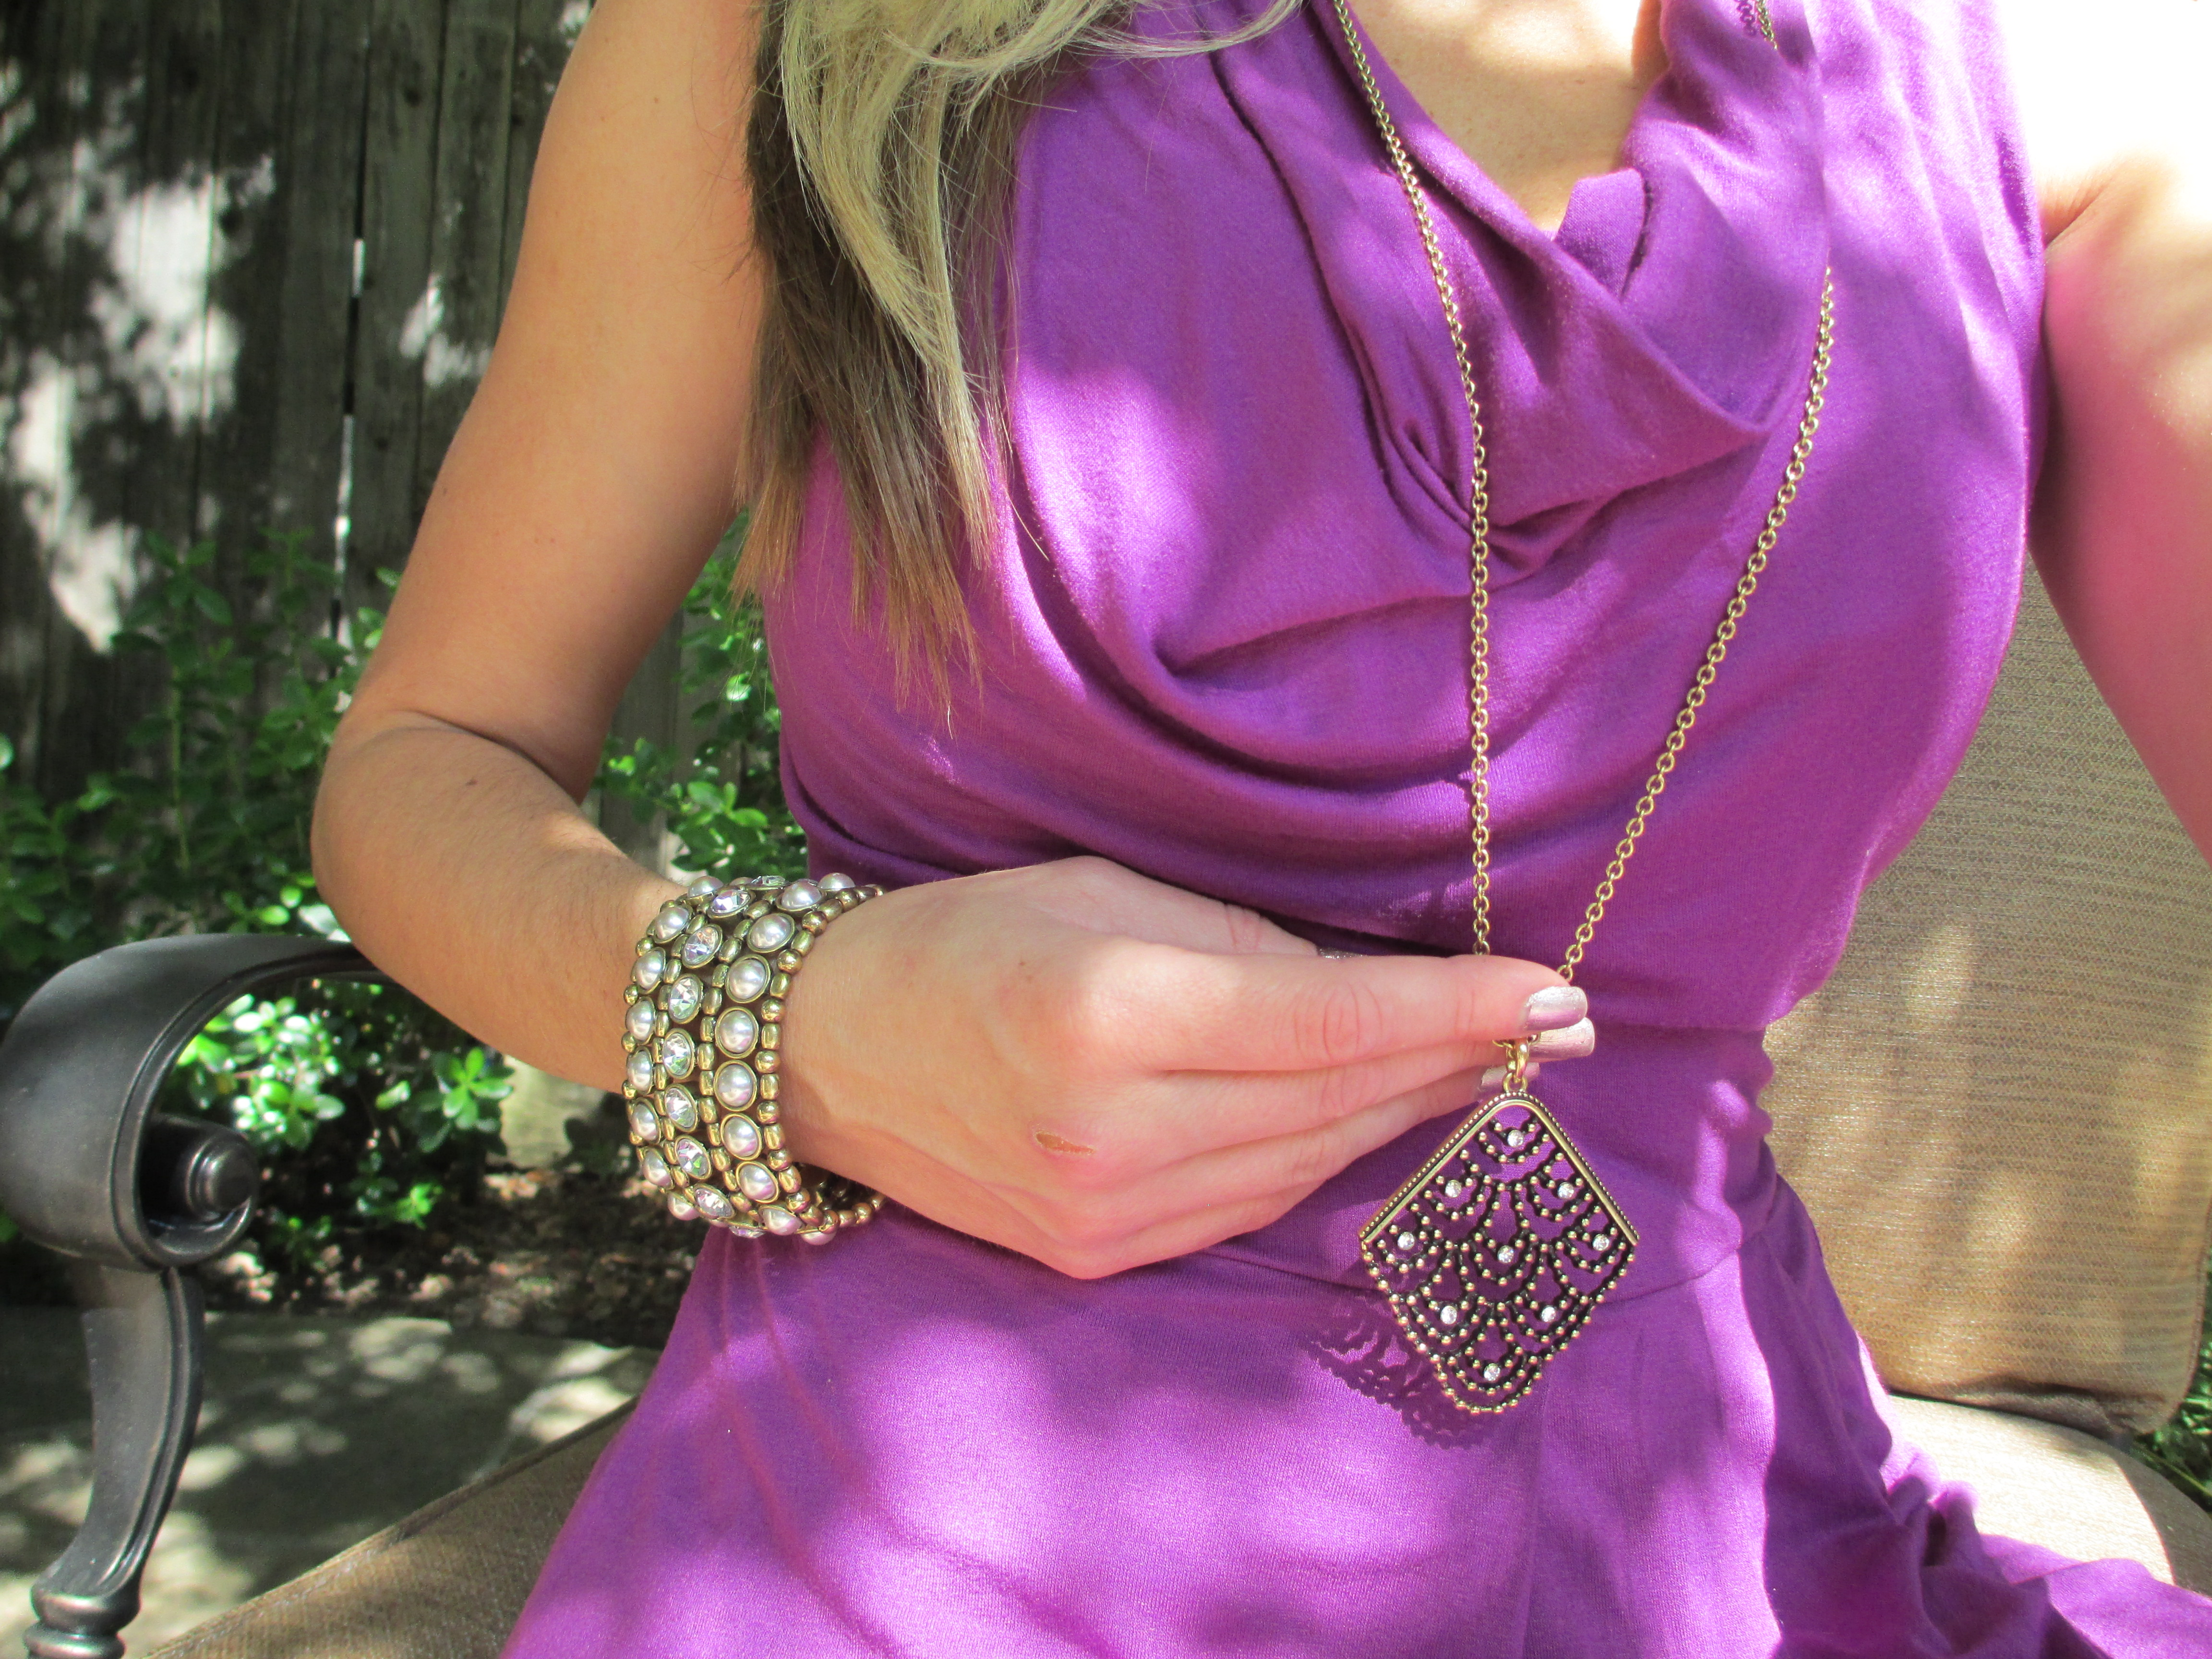 mark. Style and Stones Bracelet with Vintage Feel Necklace